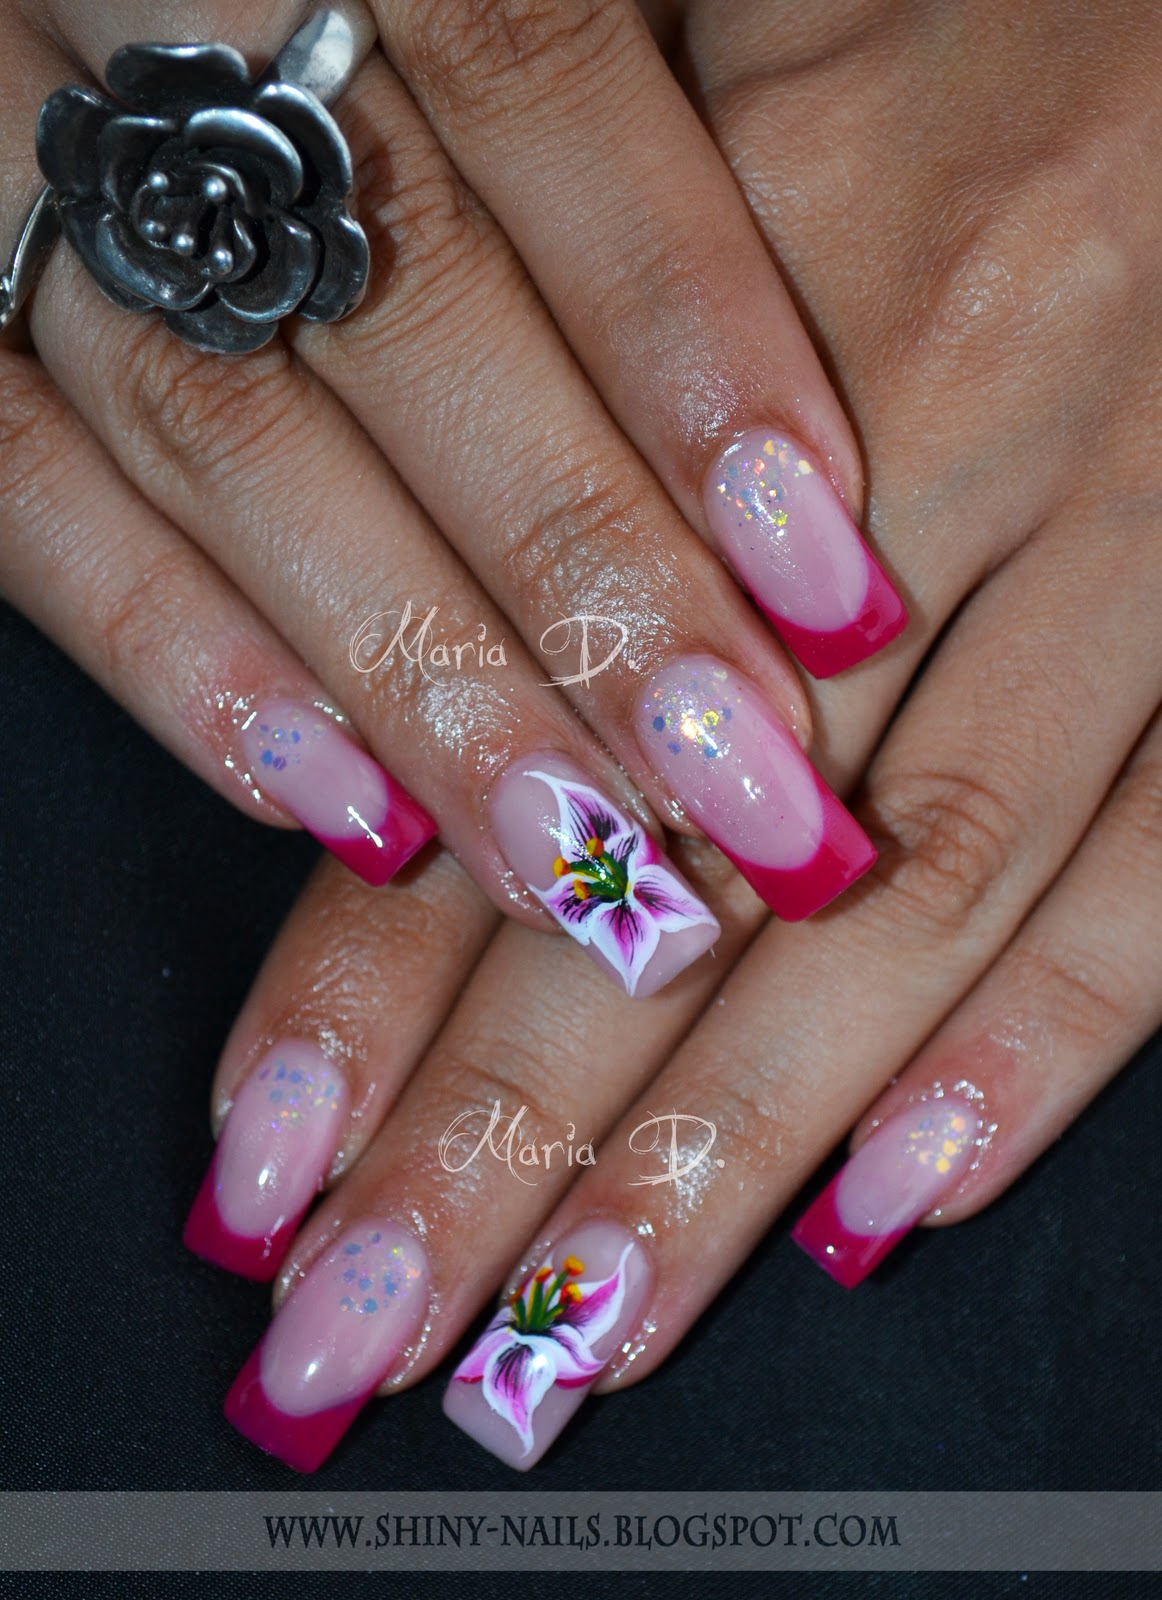 Shiny Nails By Maria D Lilies And White Dust